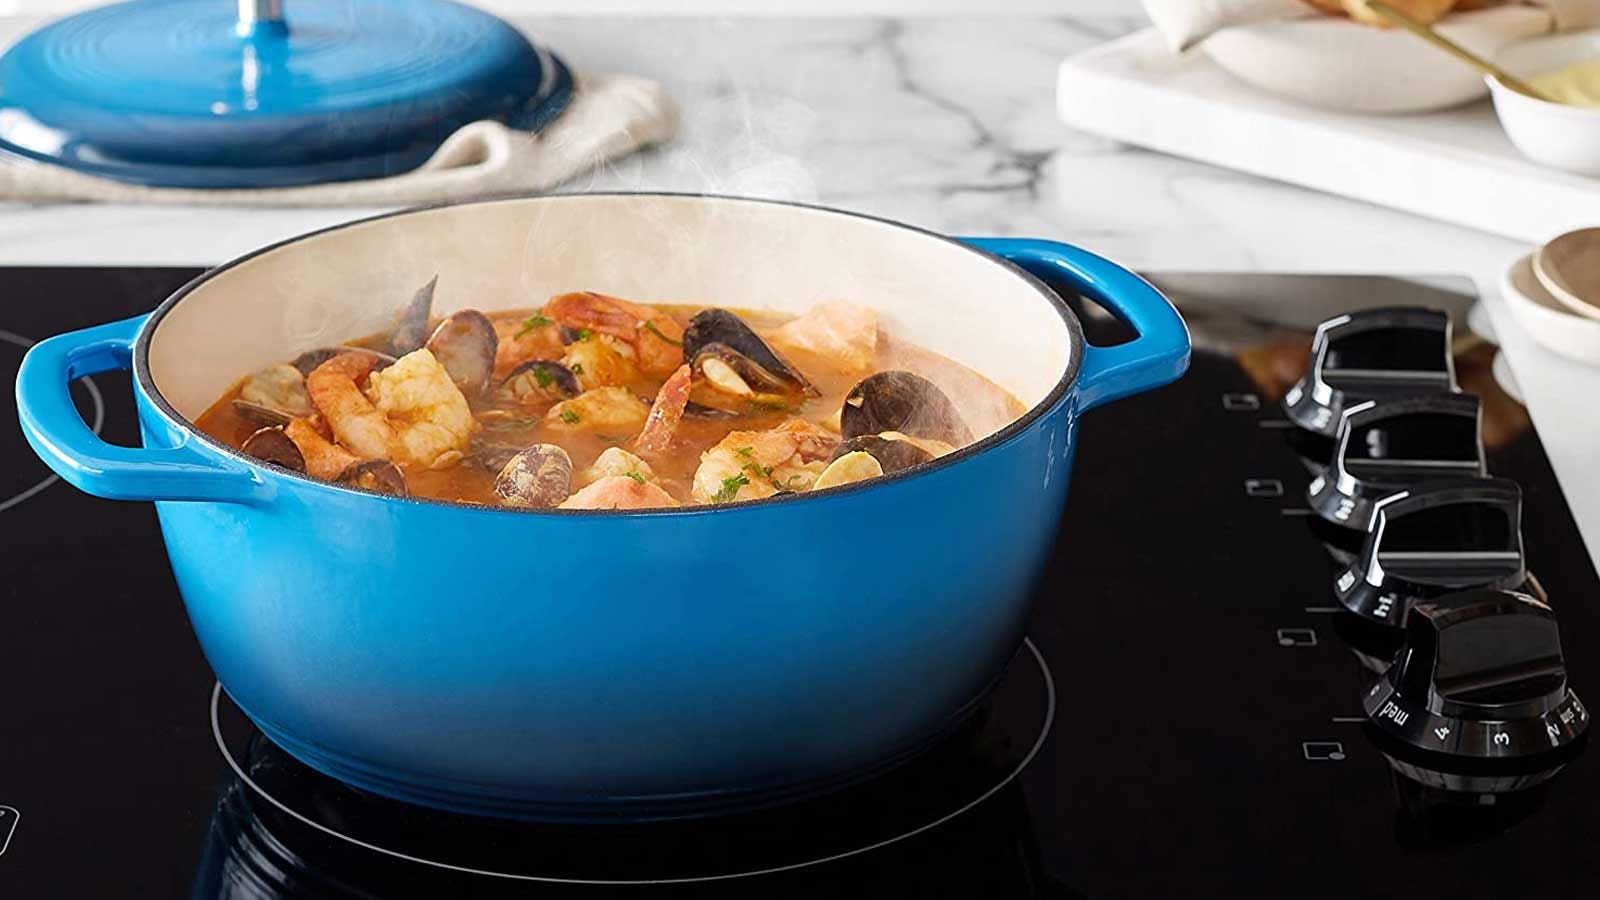 An AmazonBasics Dutch oven on an electric stovetop.